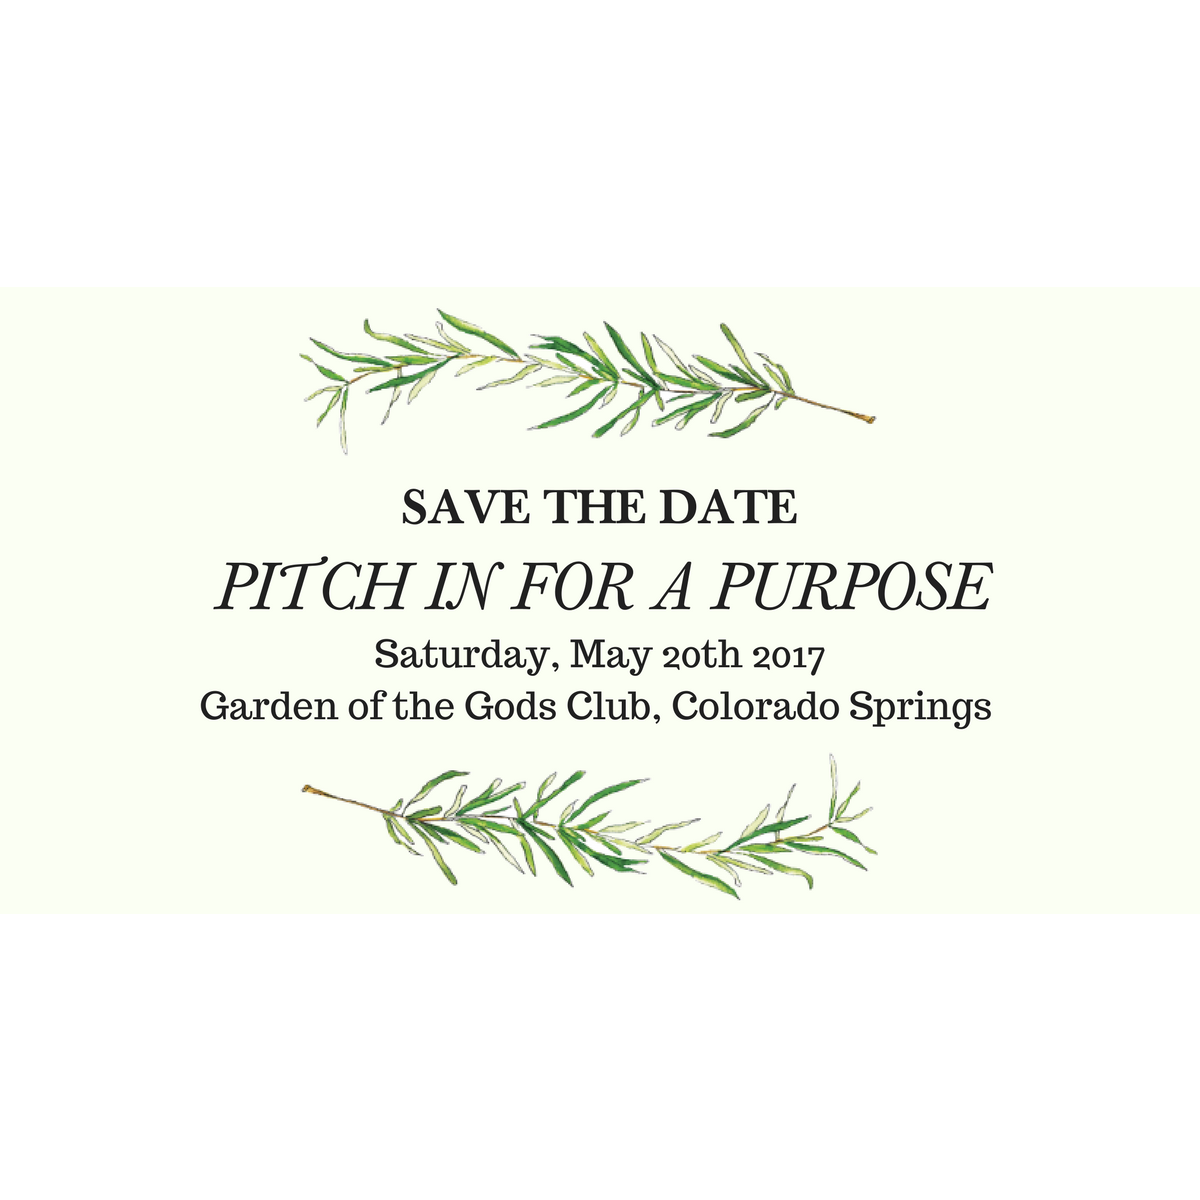 https://www.joeniekrofoundation.com/events/past-events/pastevents2017/pitch-in-for-a-purpose/attachment/pitch-in-for-a-purpose-1200x1200/